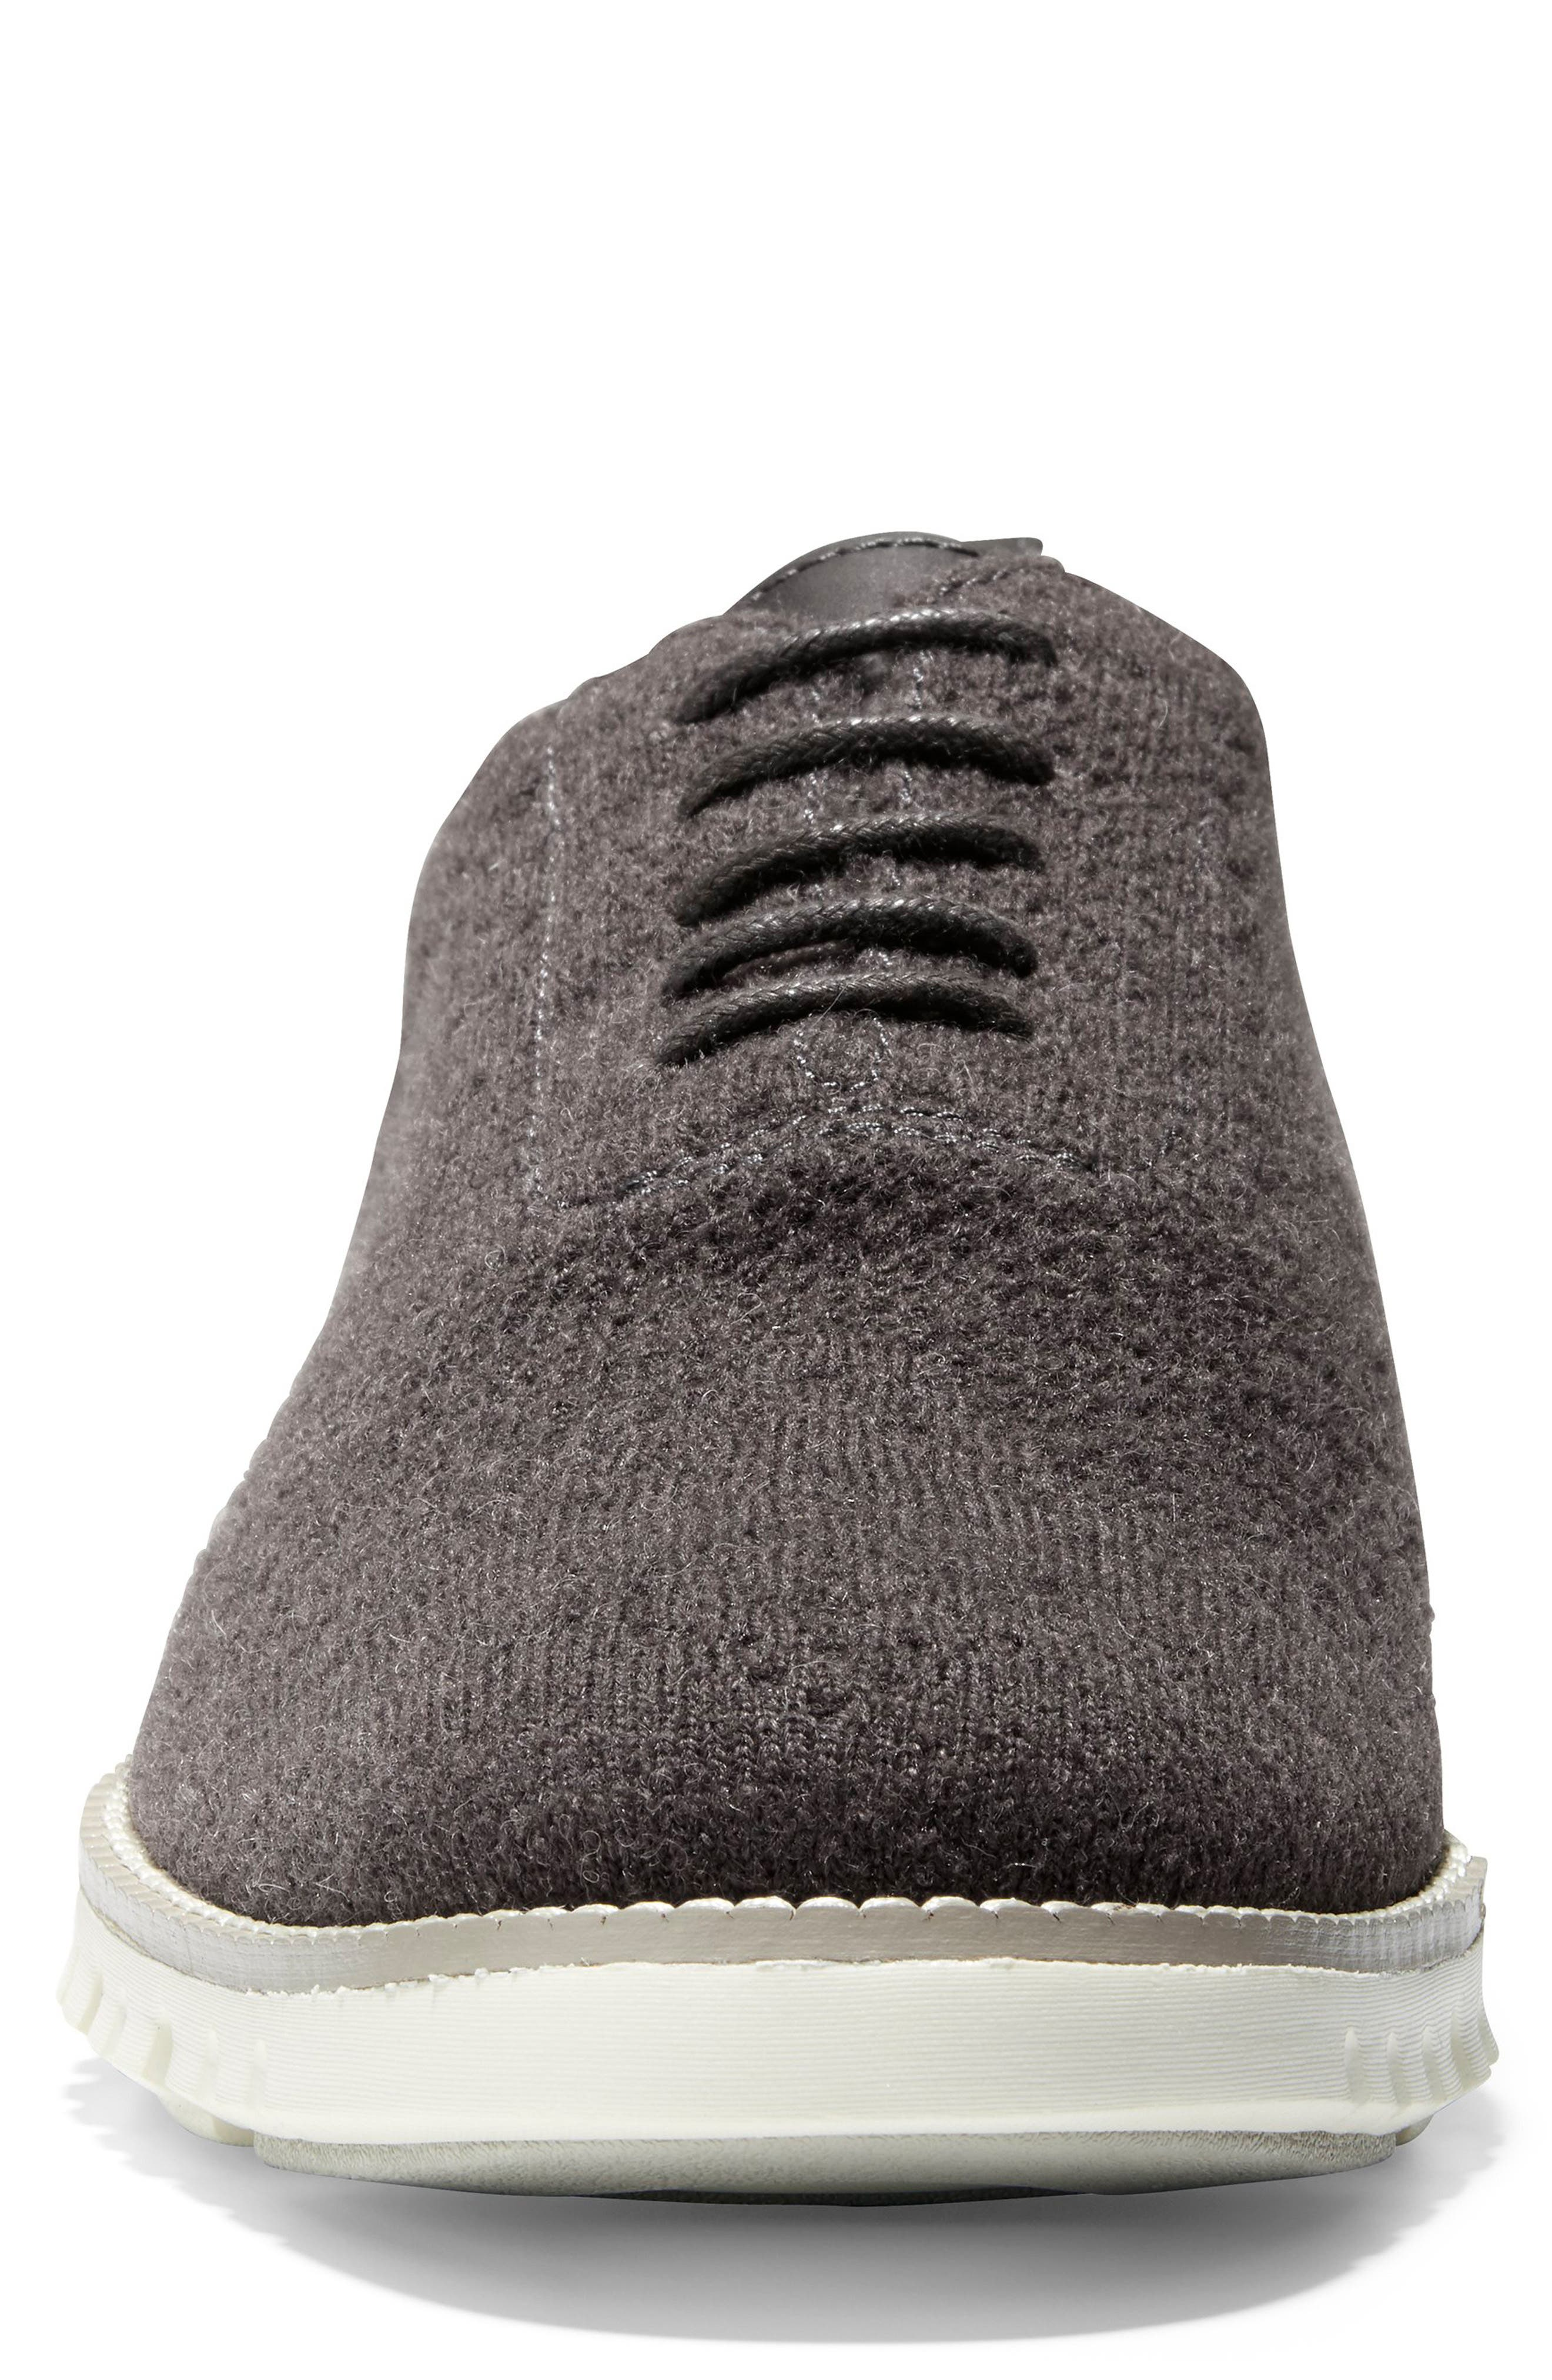 ZeroGrand Stitchlite<sup>™</sup> Water Resistant Wool Oxford,                             Alternate thumbnail 4, color,                             DARK ROAST WOOL KNIT/ IVORY